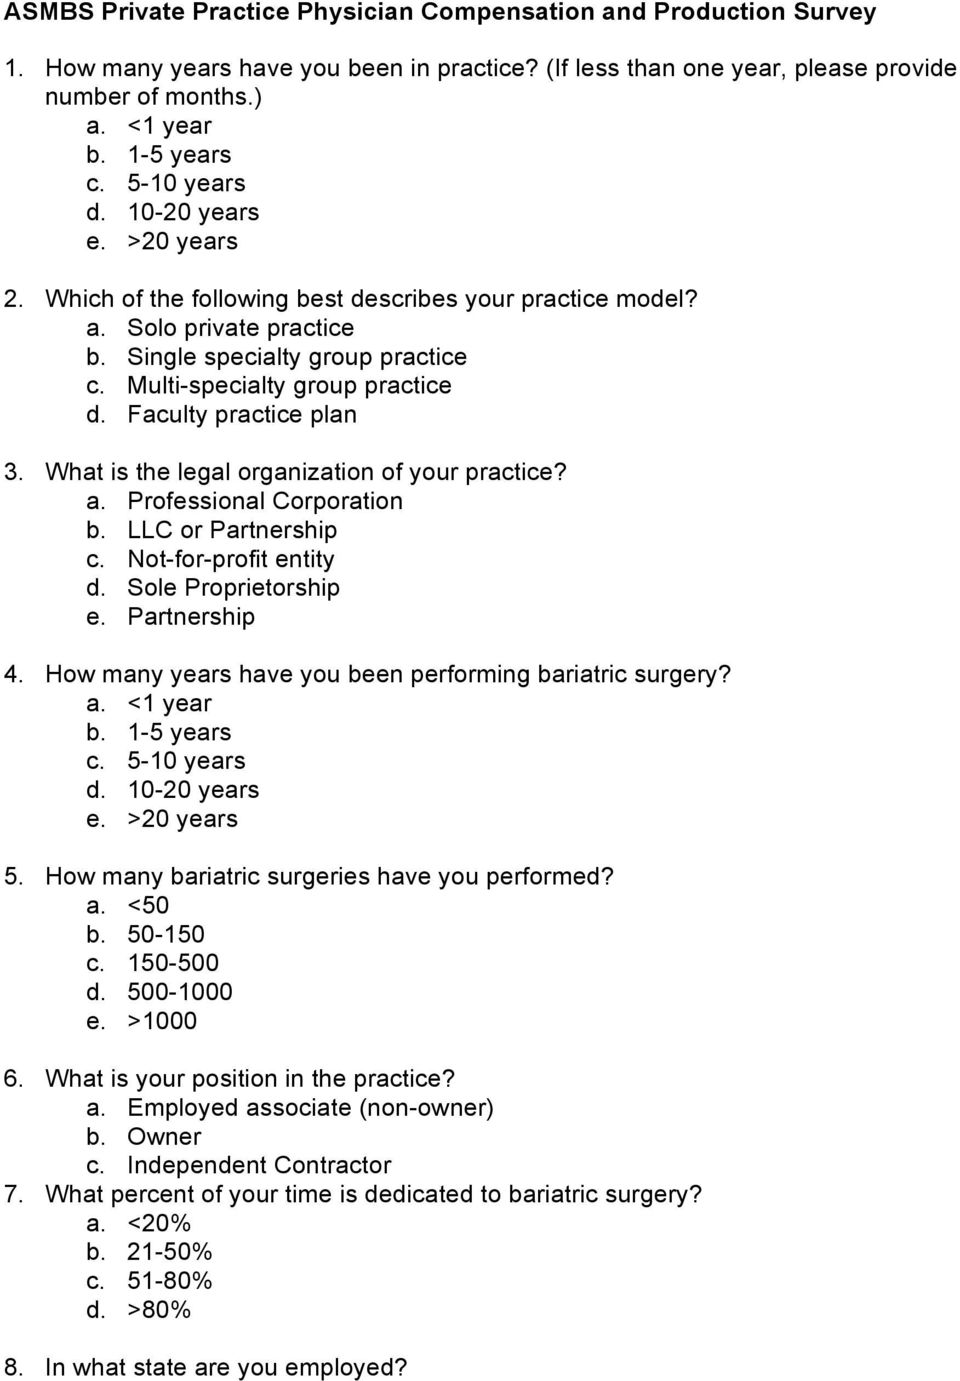 ASMBS Compensation and Practice Style Survey - PDF